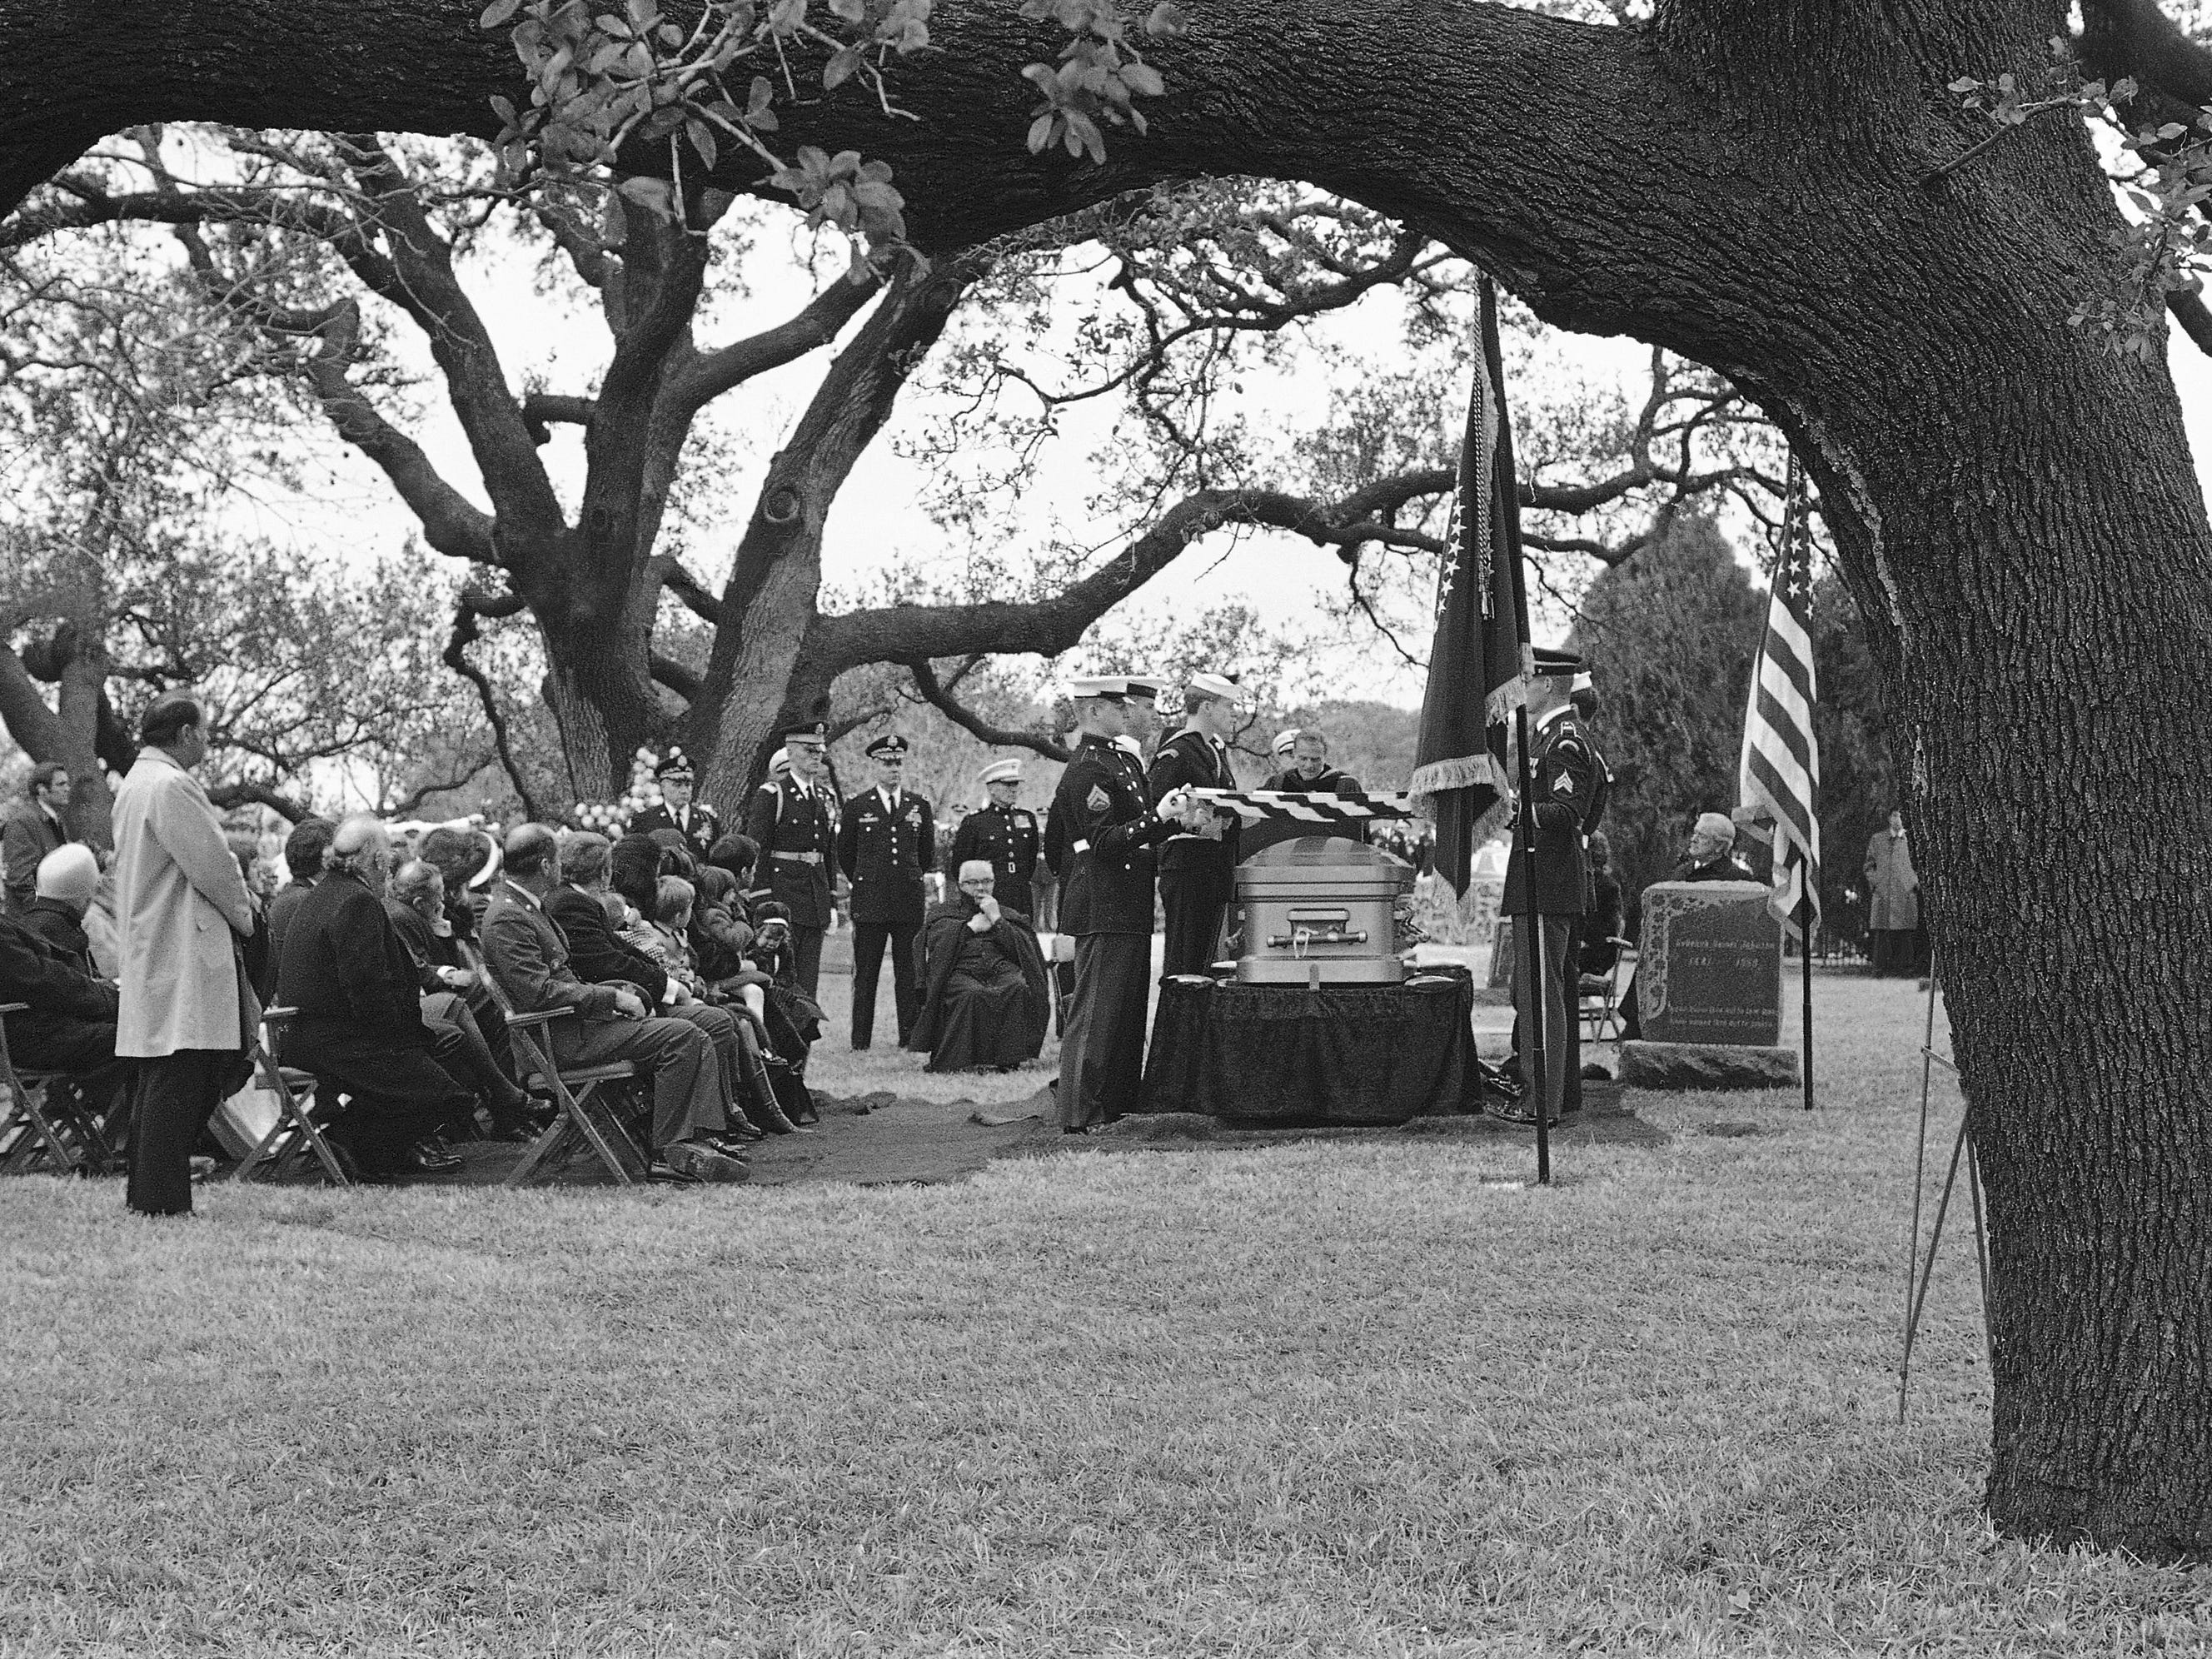 Rev. Billy Graham delivers the eulogy at the funeral of former President Lyndon B. Johnson at the family cemetery on the LBJ ranch in Stonewall, Texas, on Jan. 25, 1973.